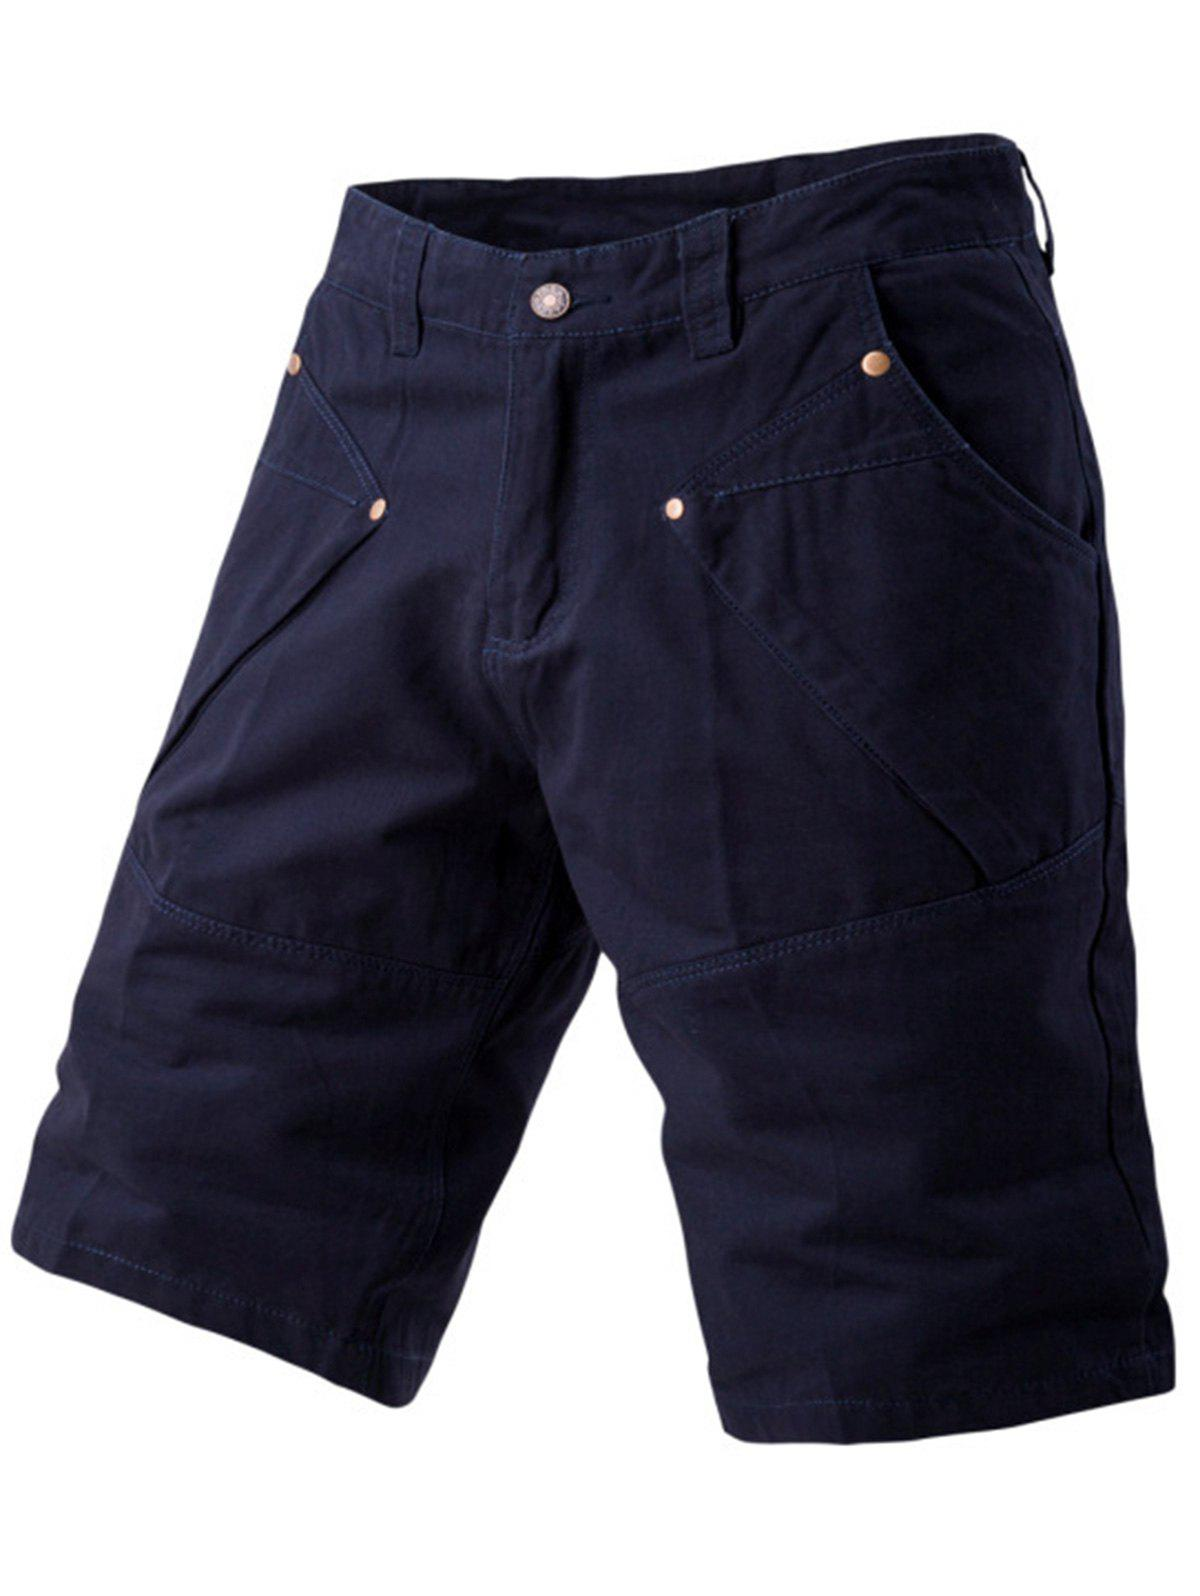 Panel Design Pockets Cargo Shorts - CADETBLUE 34